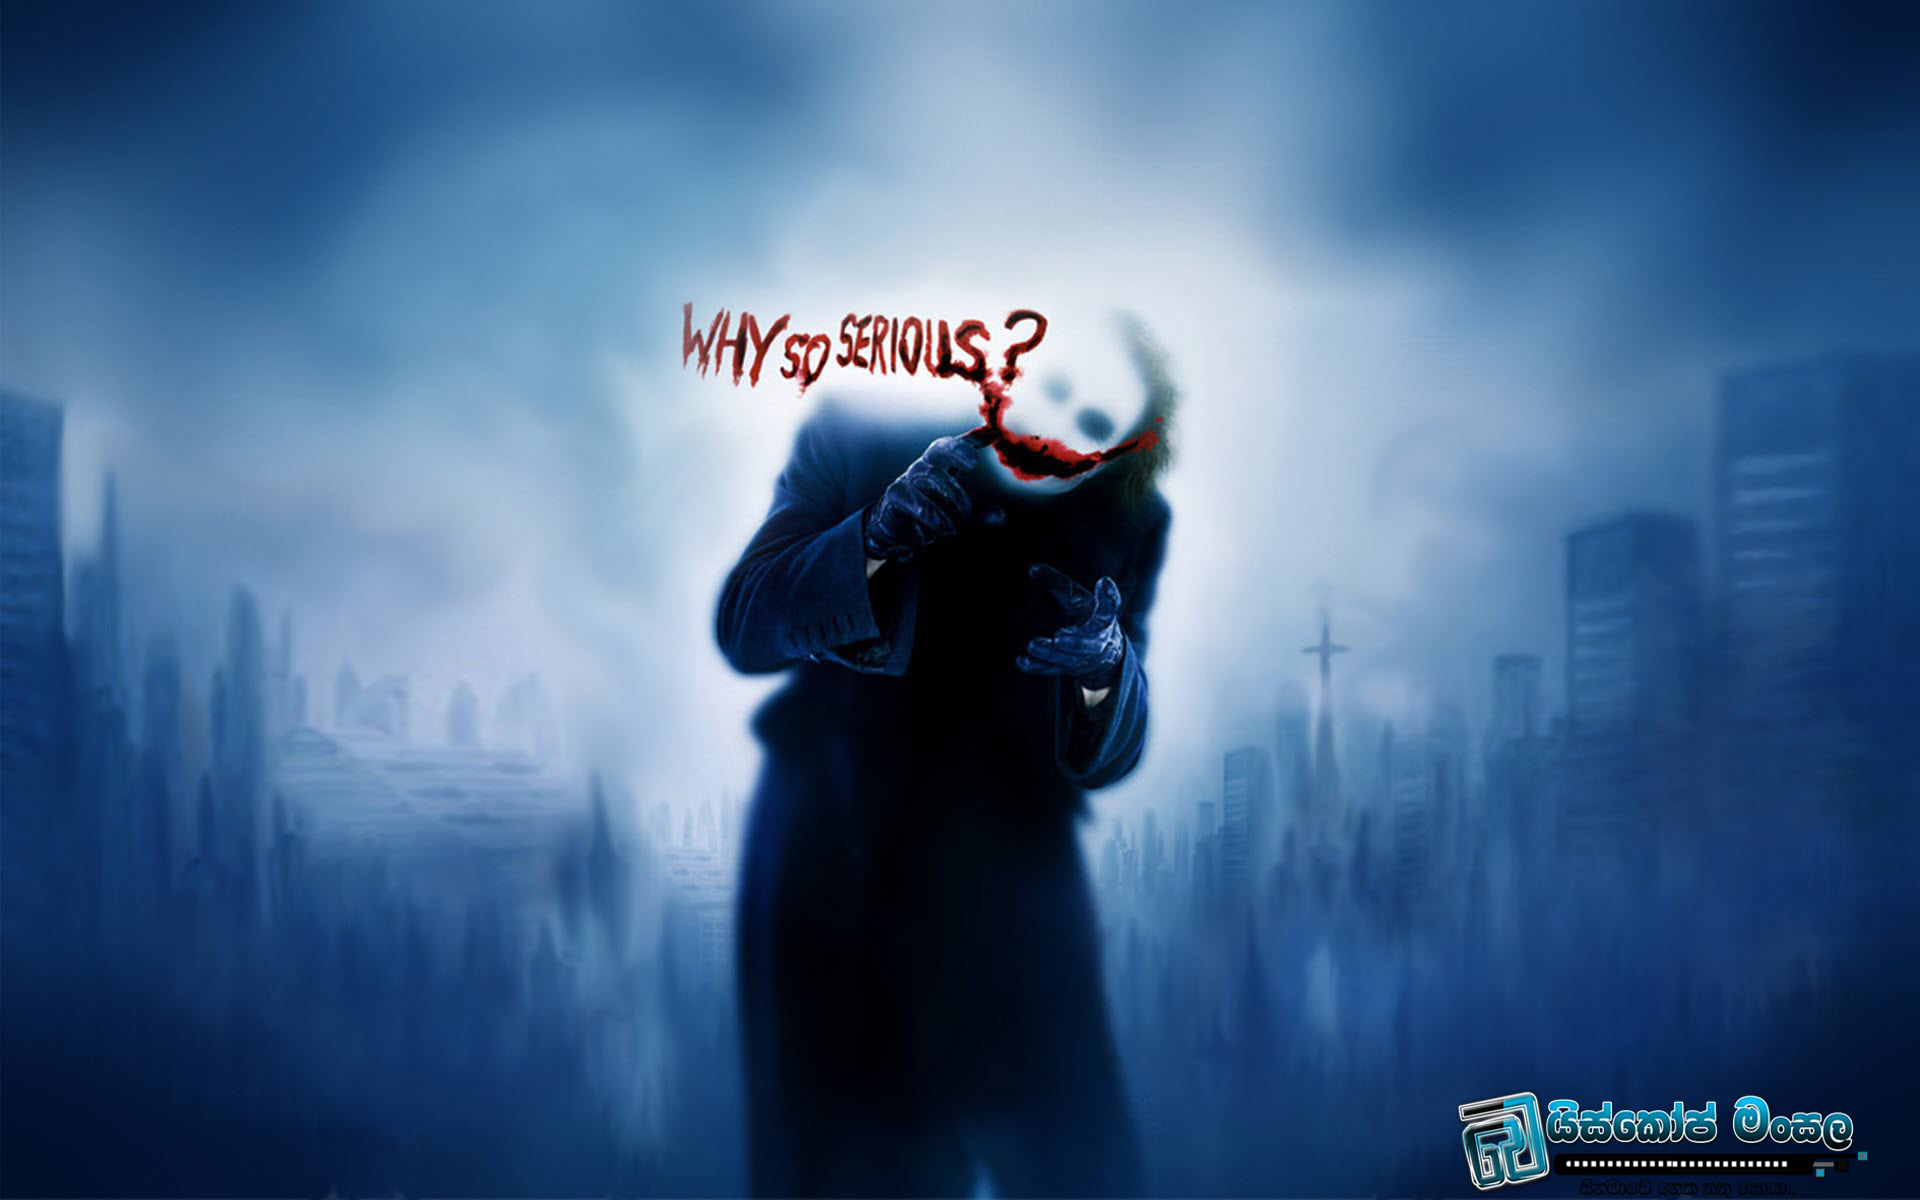 joker_why_so_sfferious-wide